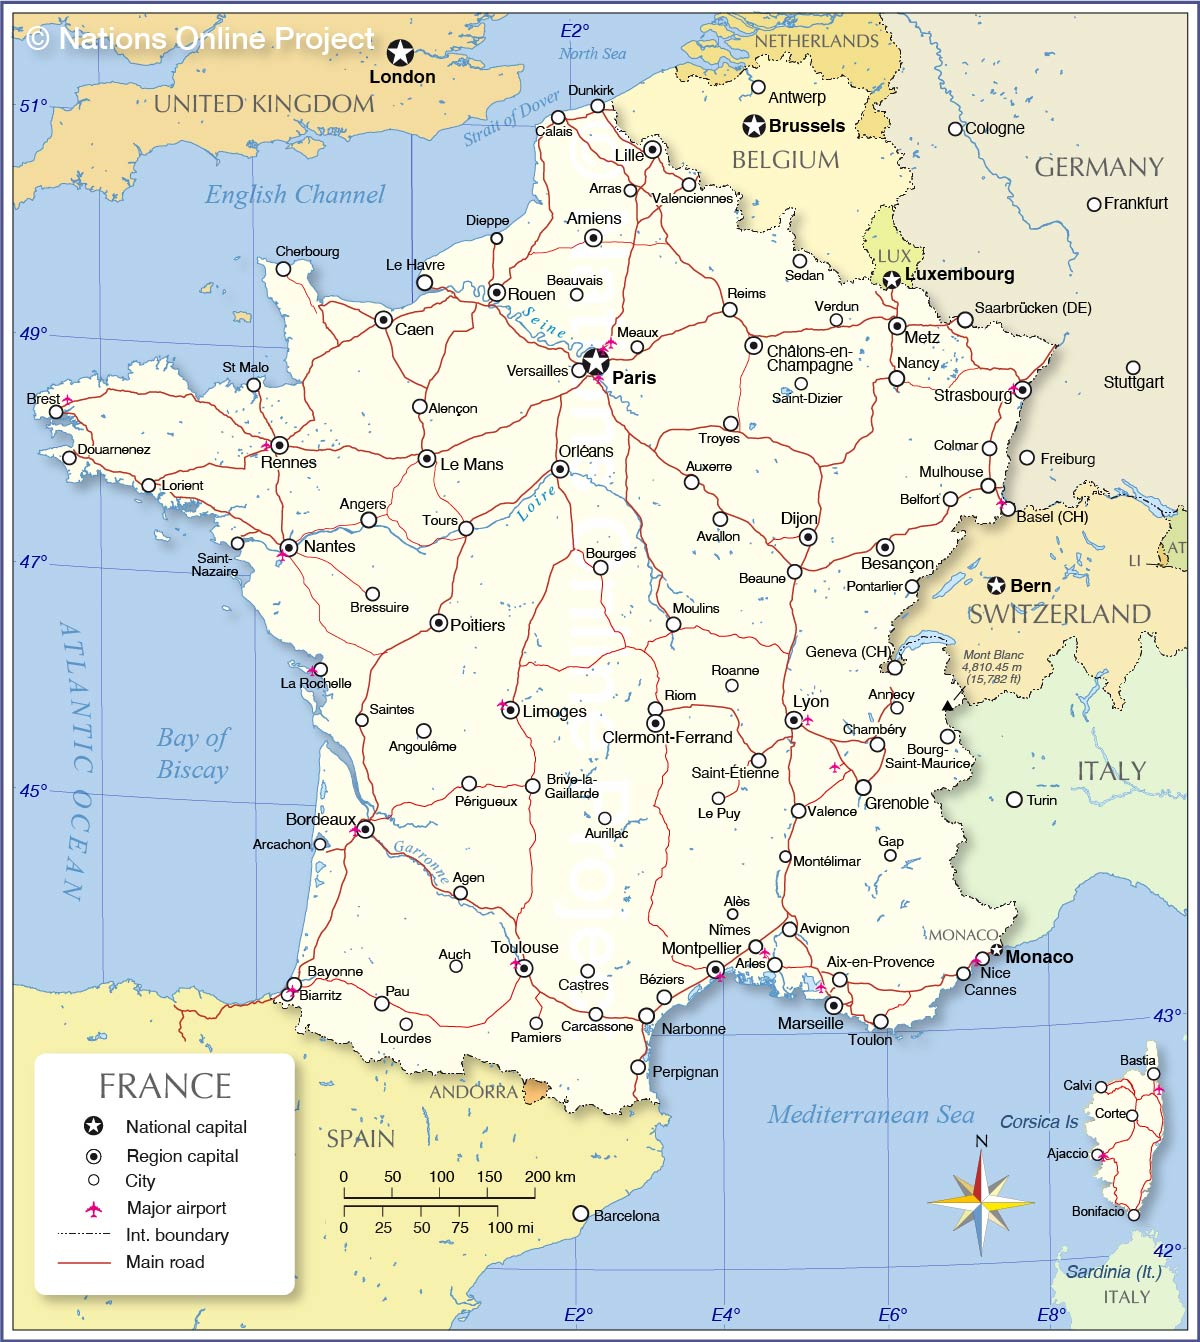 Political Map of France - Nations Online Project on map of countries that border france, map of france and turkey, map with countries border iran, map of france and neighboring countries, map of france regions departements, map of france and mountains, map of monaco and surrounding countries, map pyrenees france, map french regions in france, france and surrounding countries, map of brussels and surrounding countries, map of france and seas, map of france burgundy wine region, map of france and neighbouring countries, us map with surrounding countries, map of ancient greece and greek islands, map of france after french revolution, map of france wine growing regions, map with italy flag, map of france and outlying countries,